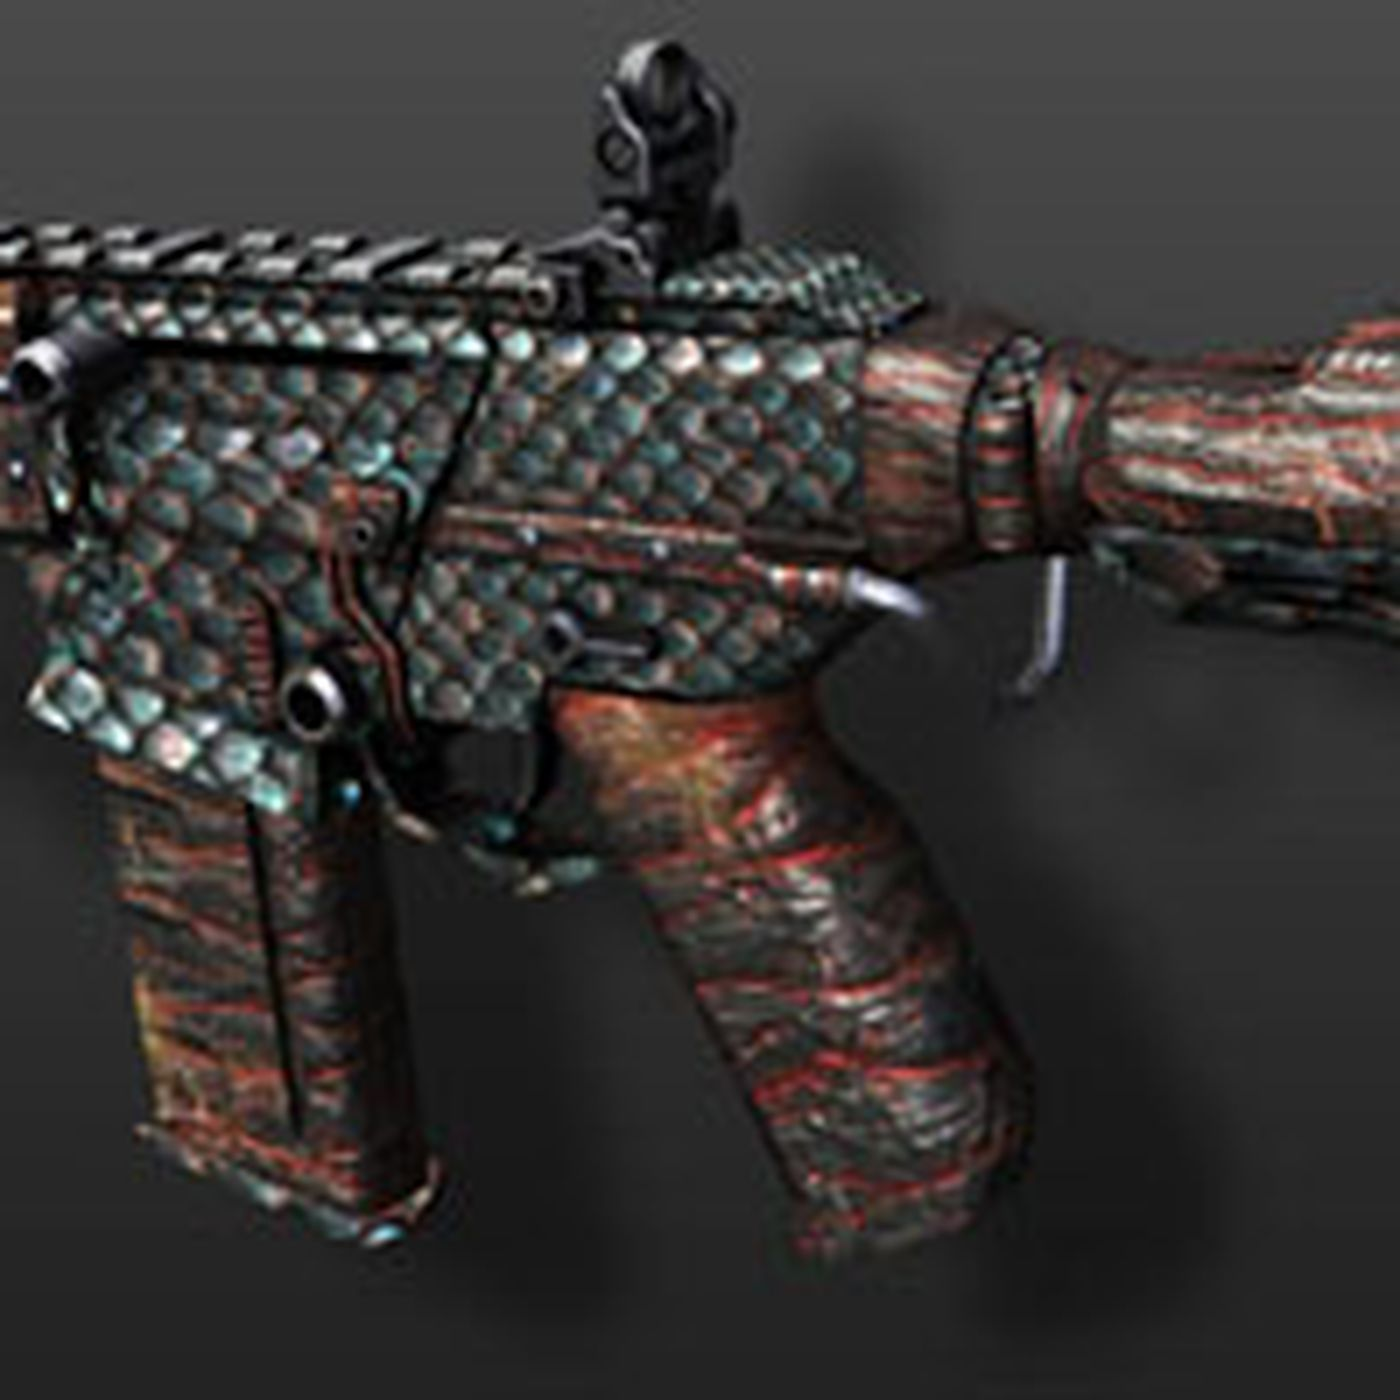 New Call Of Duty Black Ops 2 Dragon And Cyborg Weapons Chosen By